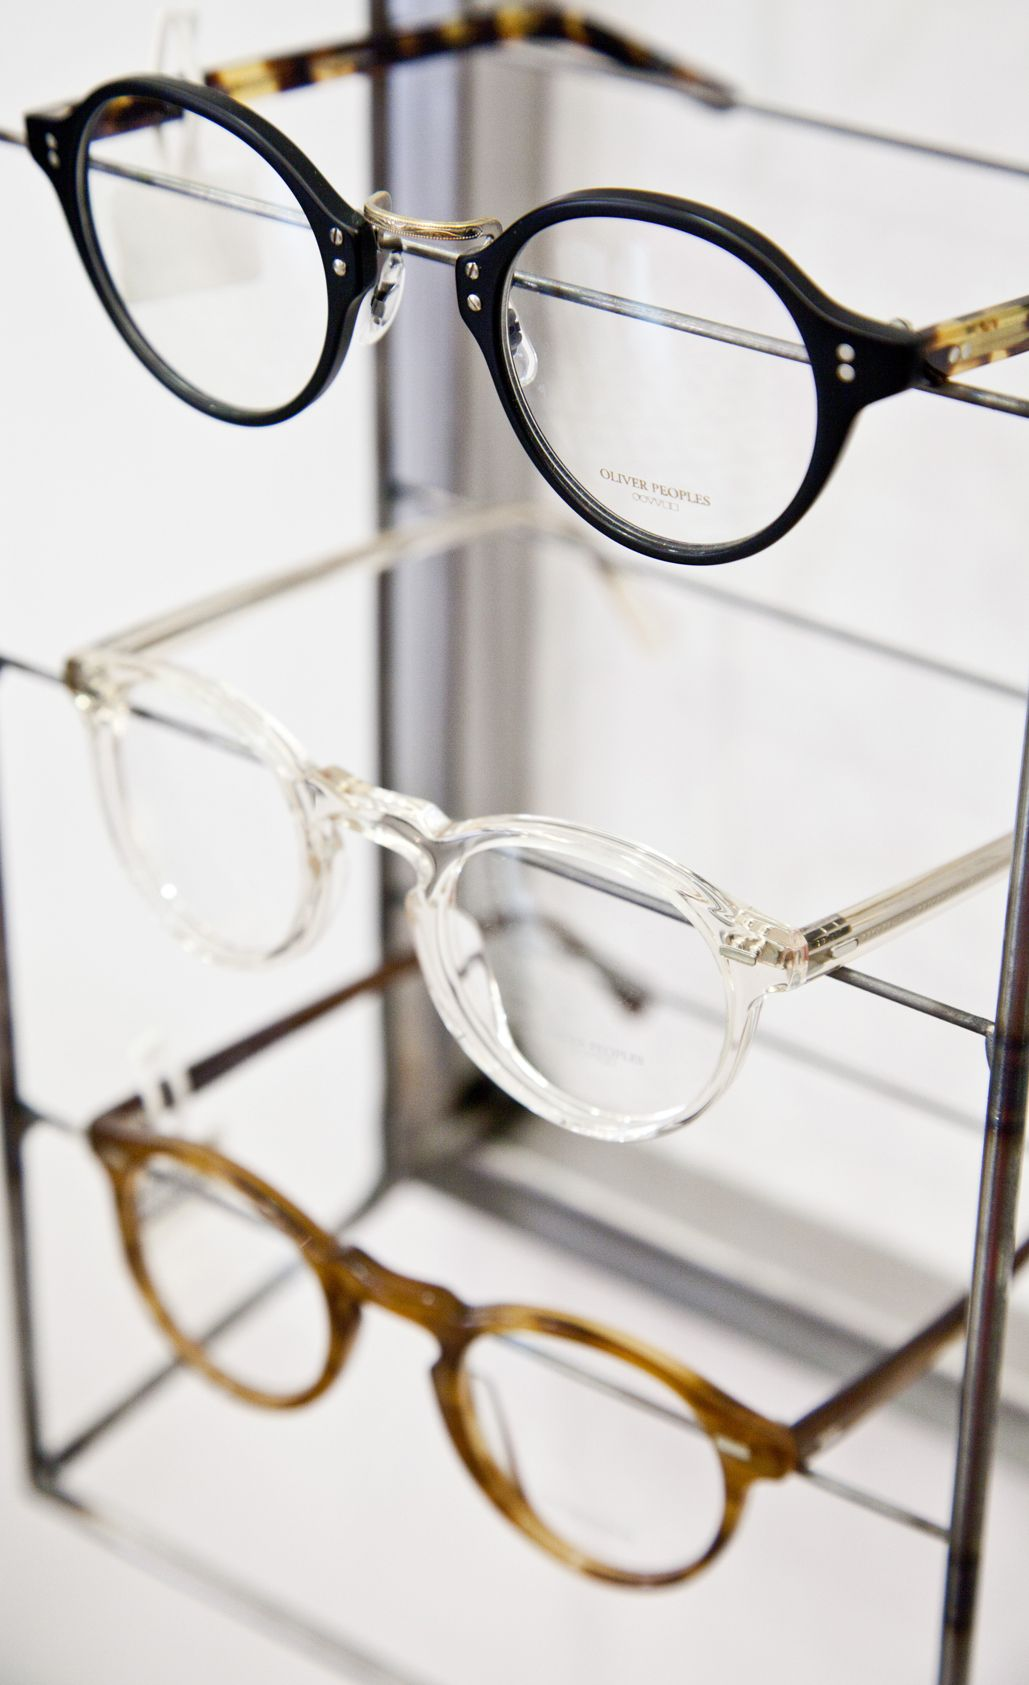 a8f59923d23 OLIVER PEOPLES Oliver Peoples MARETT Combi Boston frame with ITA glasses  2016